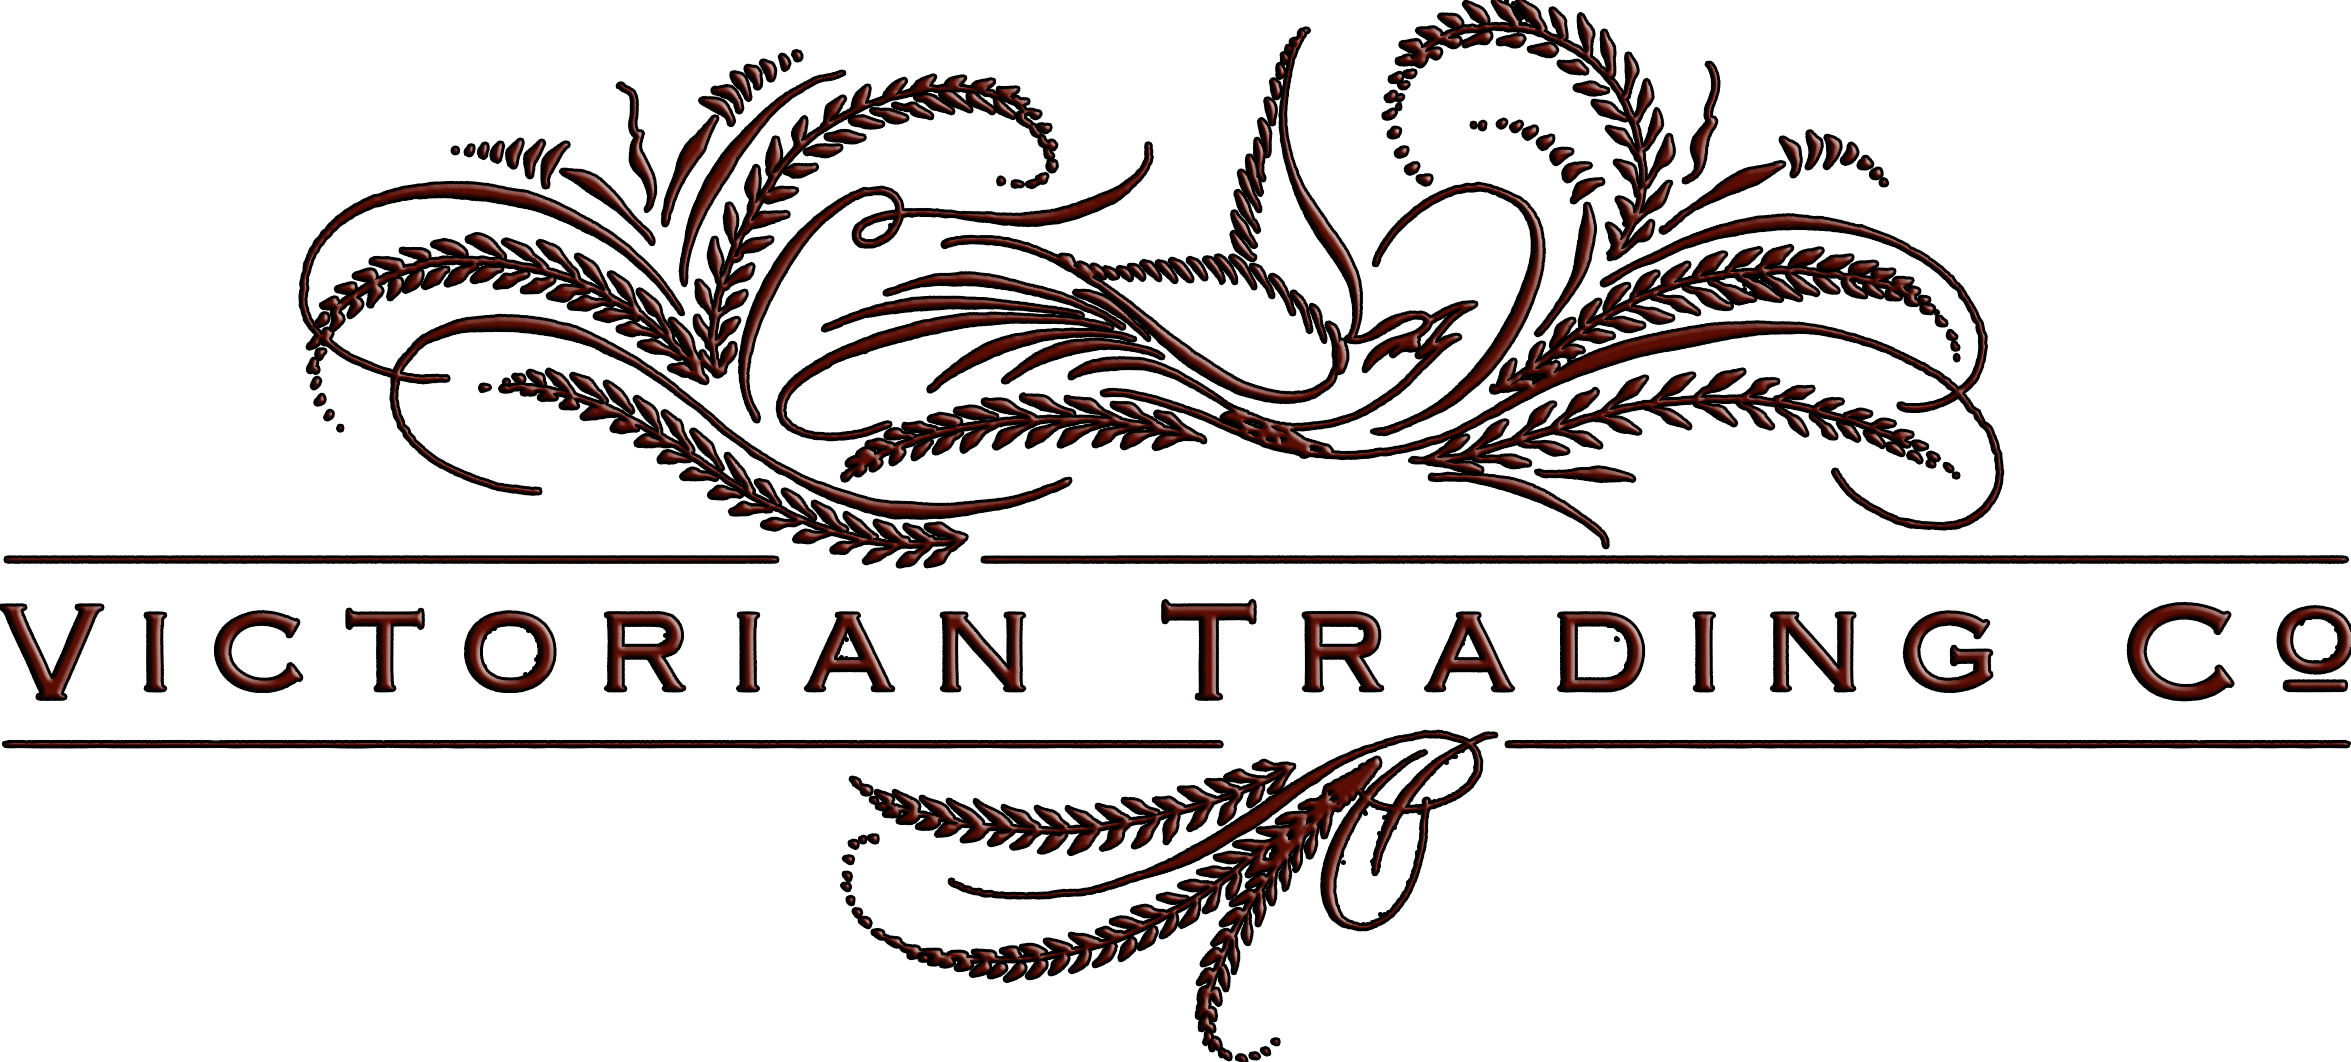 Victorian Trading Co. | The Official Blog